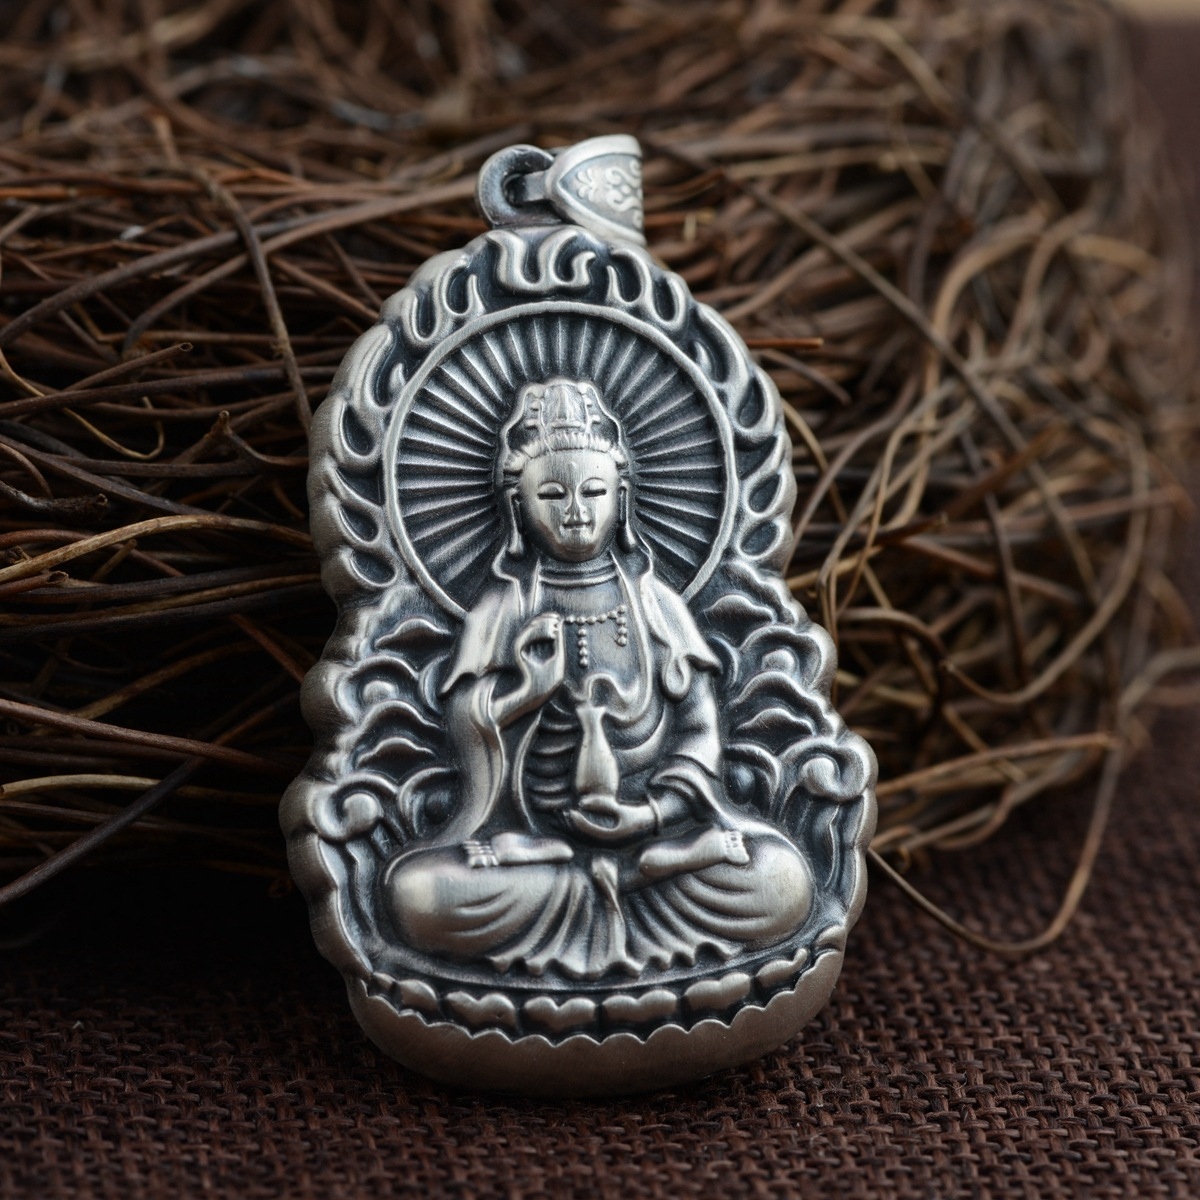 2018 Promotion Slide Jewelry Line Wholesale 990 Fine Pendant Inferior Smooth Process Guanyin Bodhisattva Everyone New